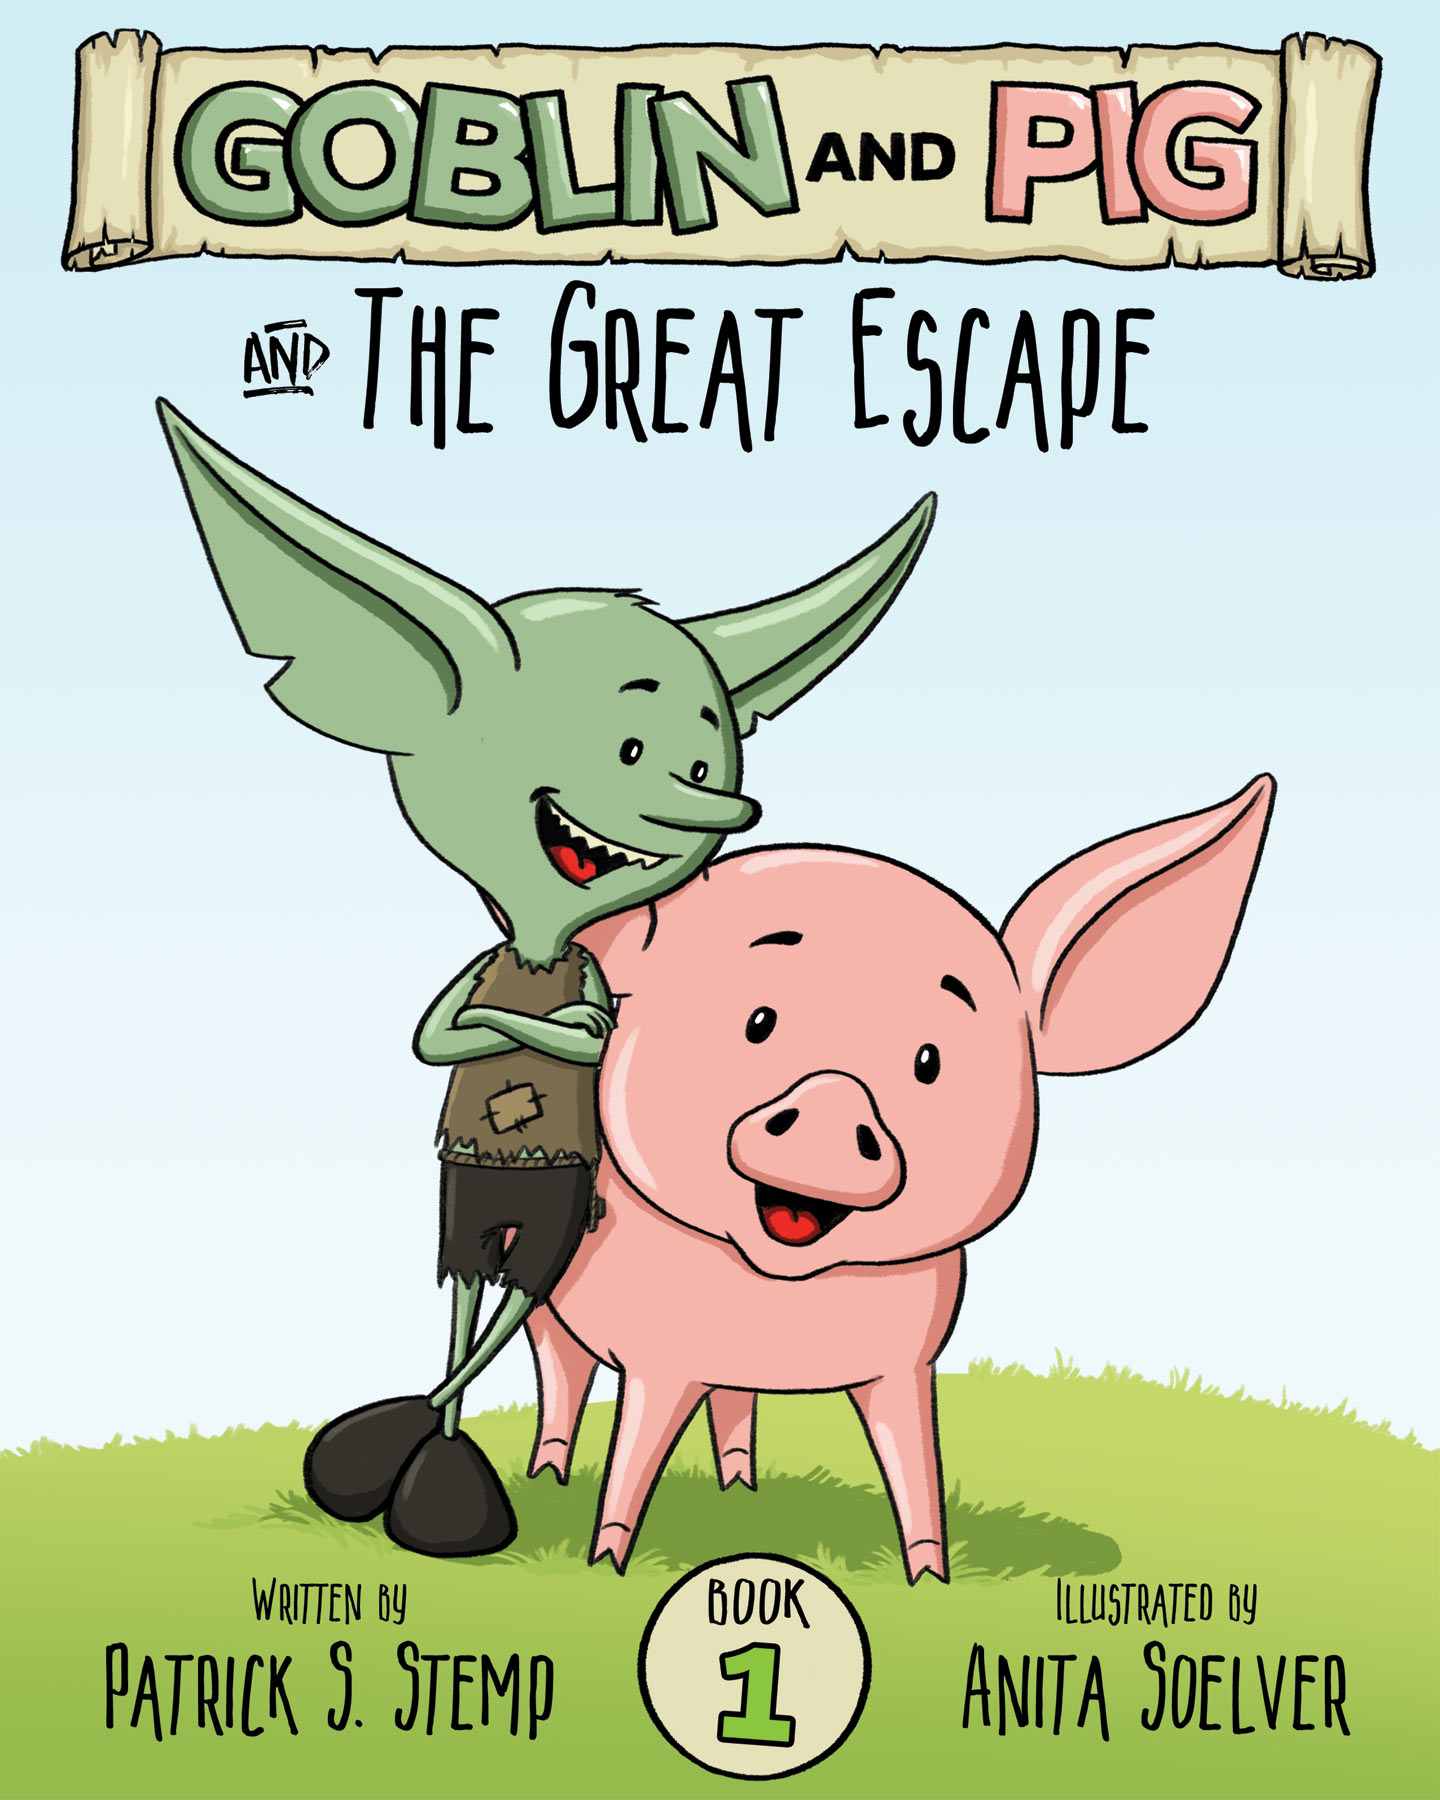 The Great Escape - a children's book by Patrick Stemp & Anita Soelver